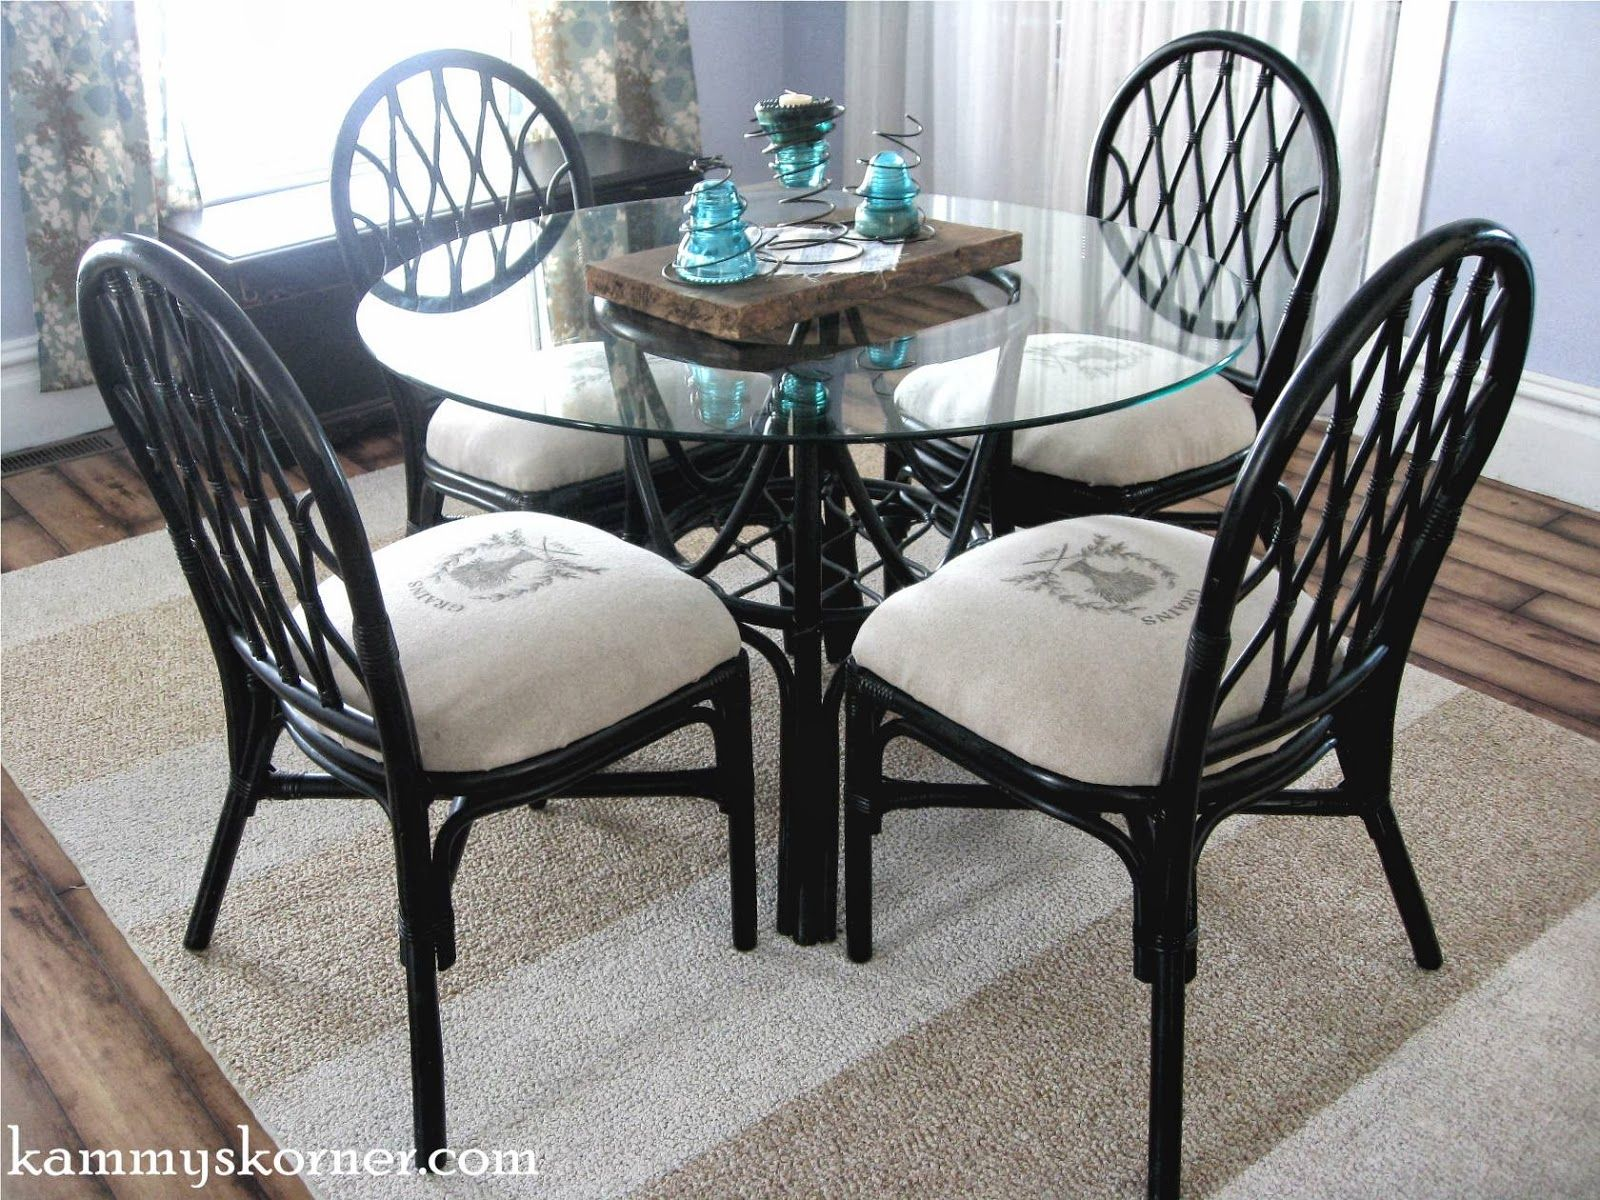 Rattan Dining Chairs Makeover Image Transfer With Freezer Paper Dining Chair Makeover Rattan Dining Chairs Chair Makeover